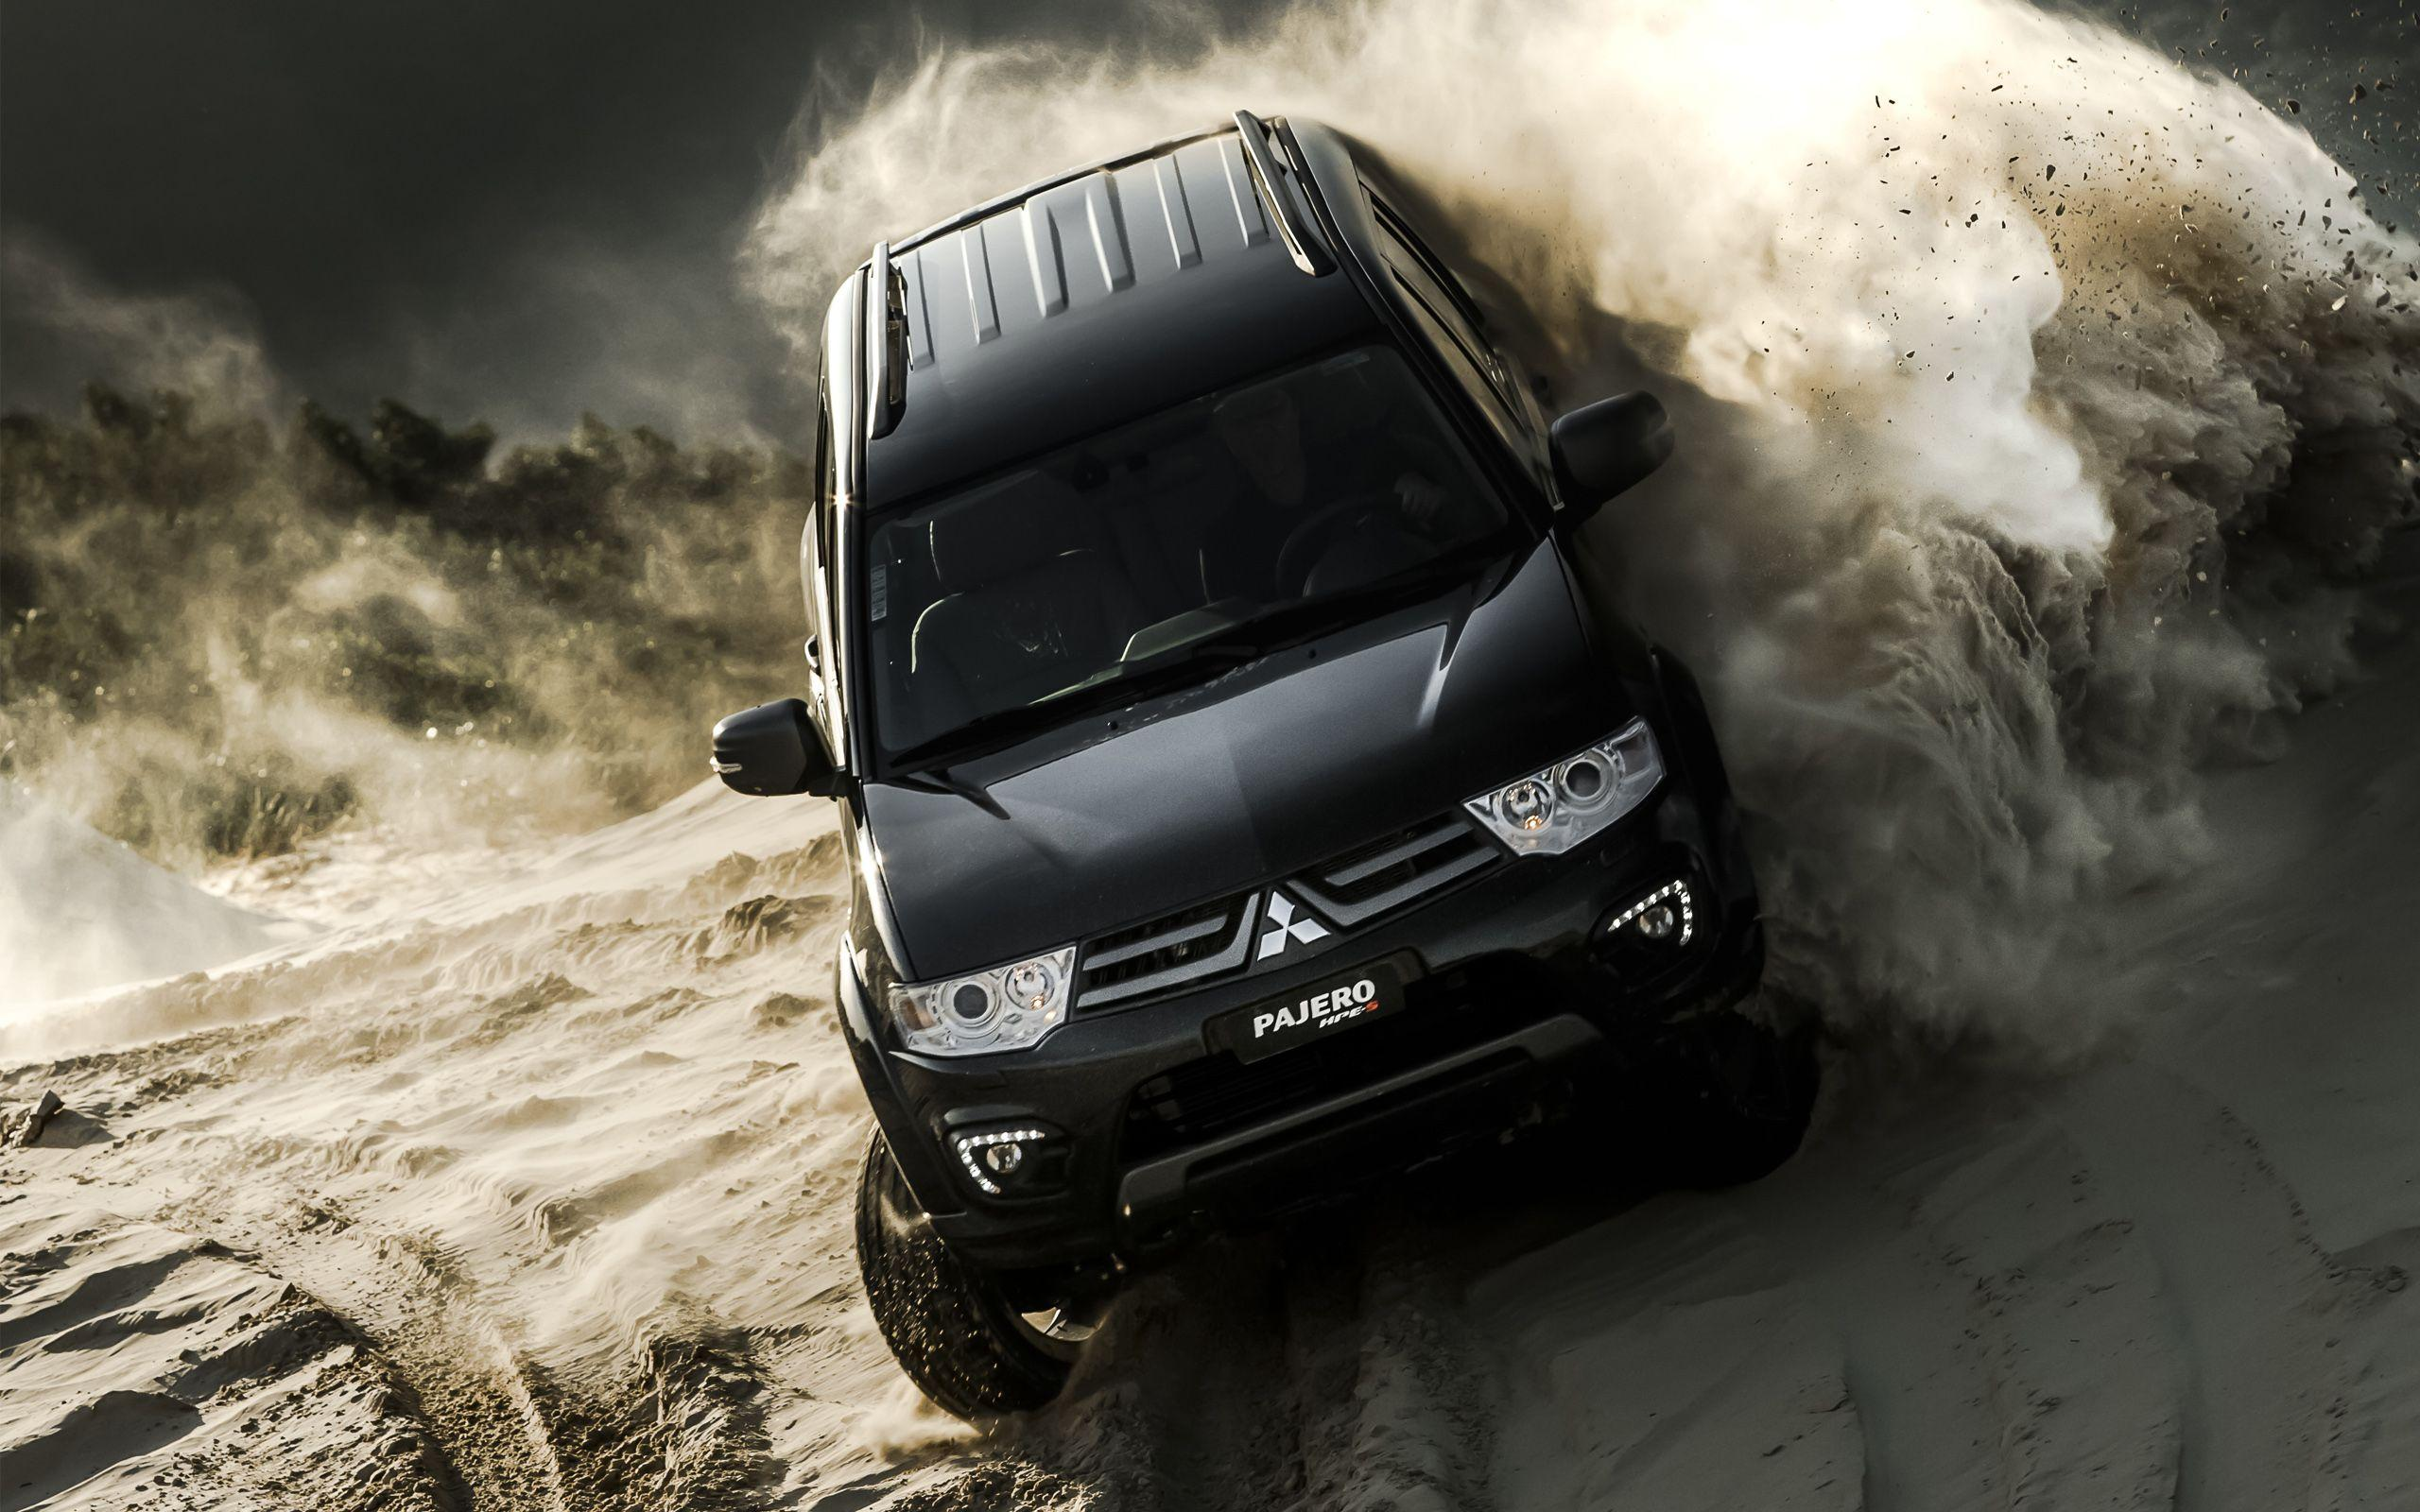 2015 Mitsubishi Pajero HPE S Wallpaper | HD Car Wallpapers